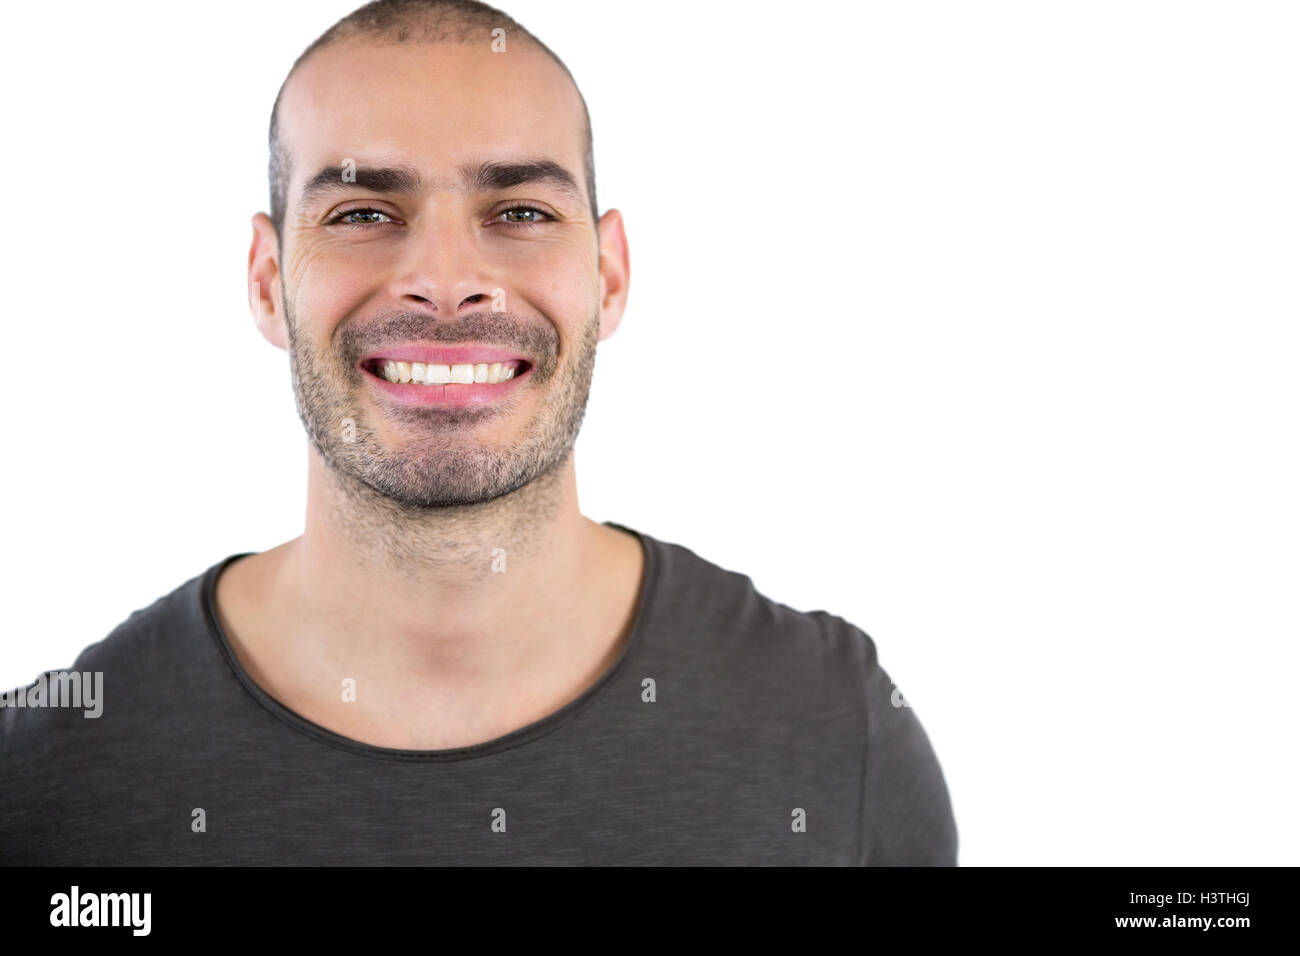 Man smiling against white background - Stock Image